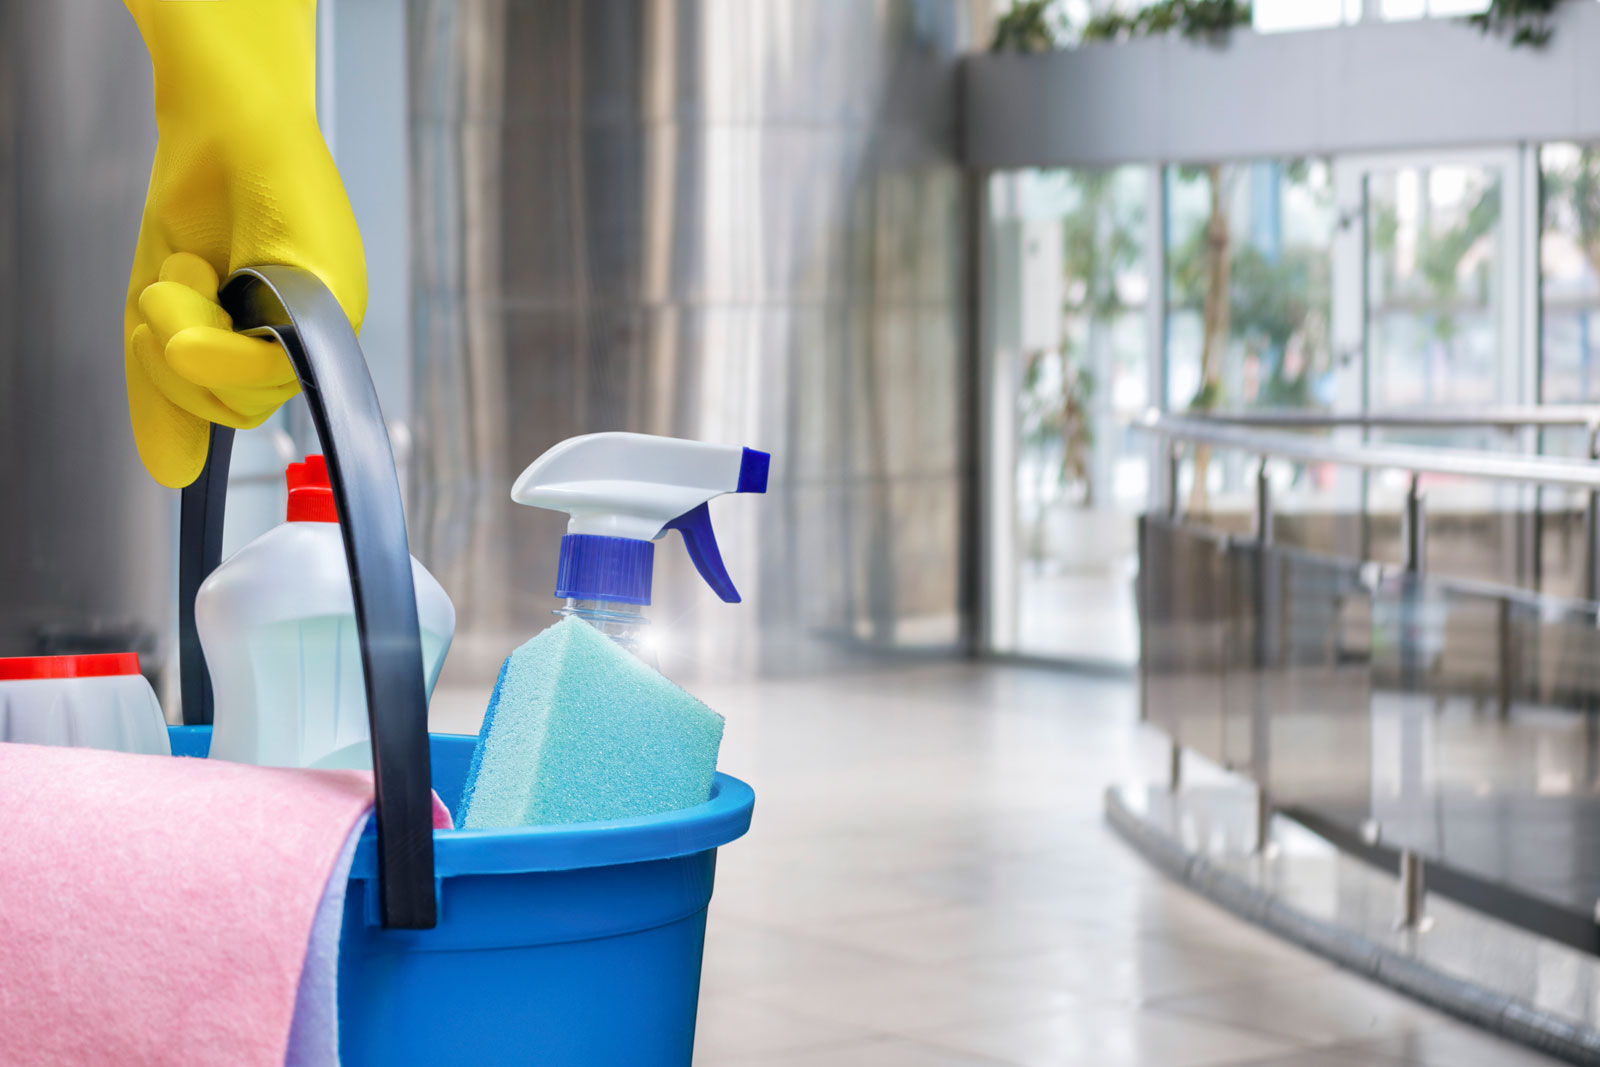 Cleaning Services - unique services